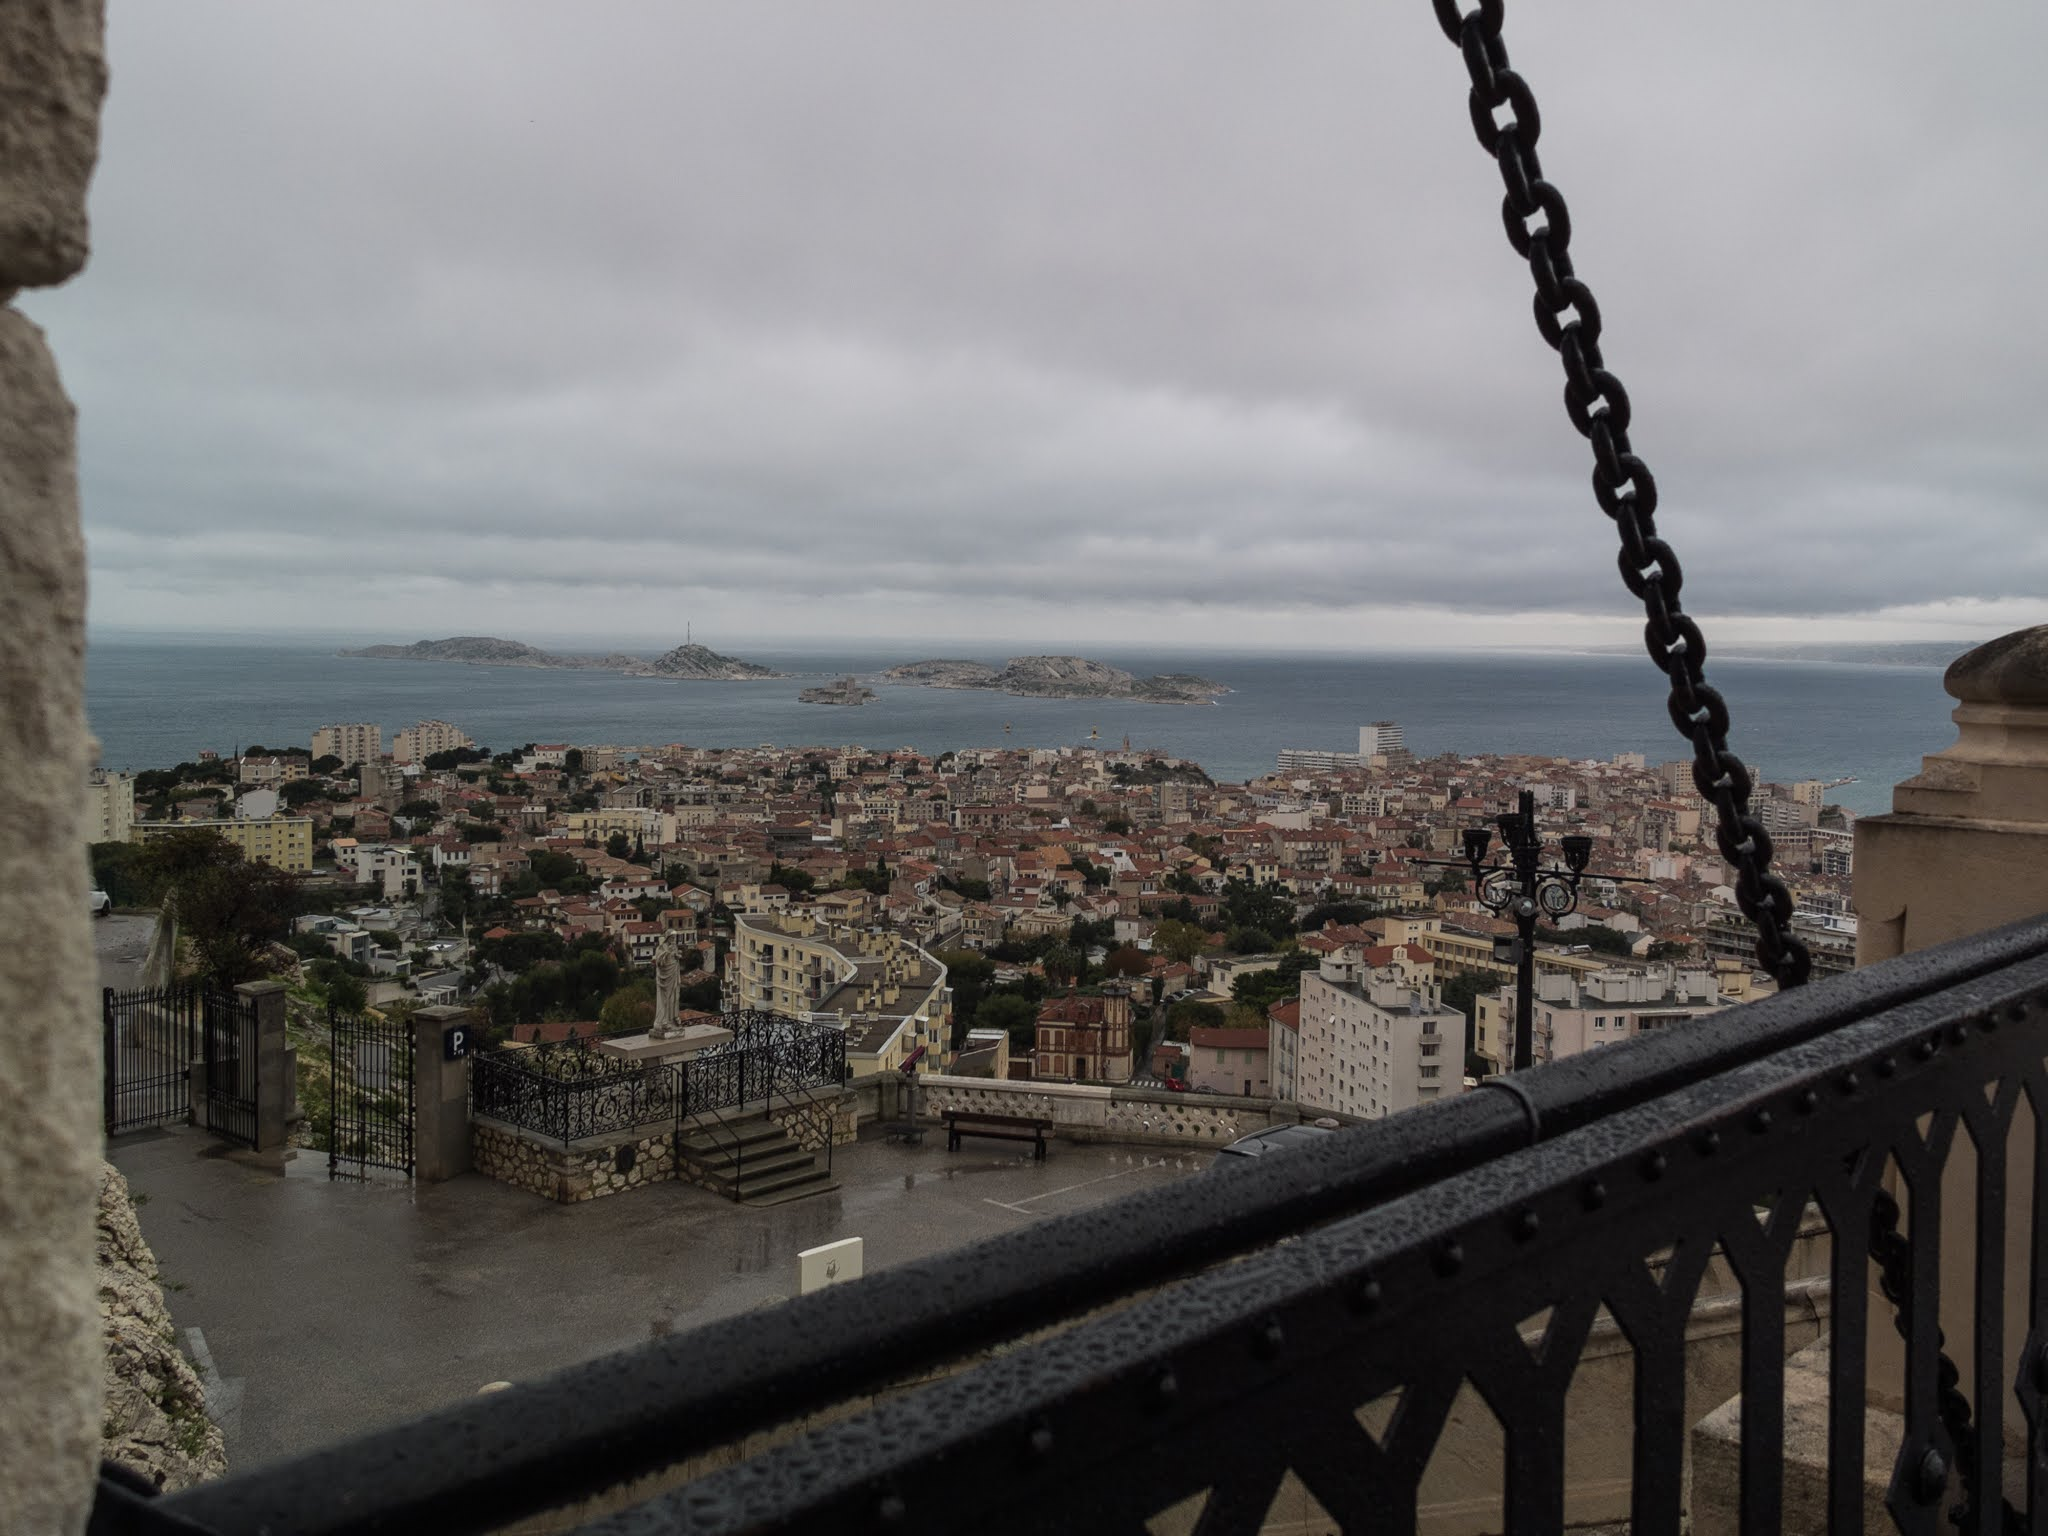 View of Marseille and its islands from the drawbridge in the Basilica of Notre Dame de la Garde.